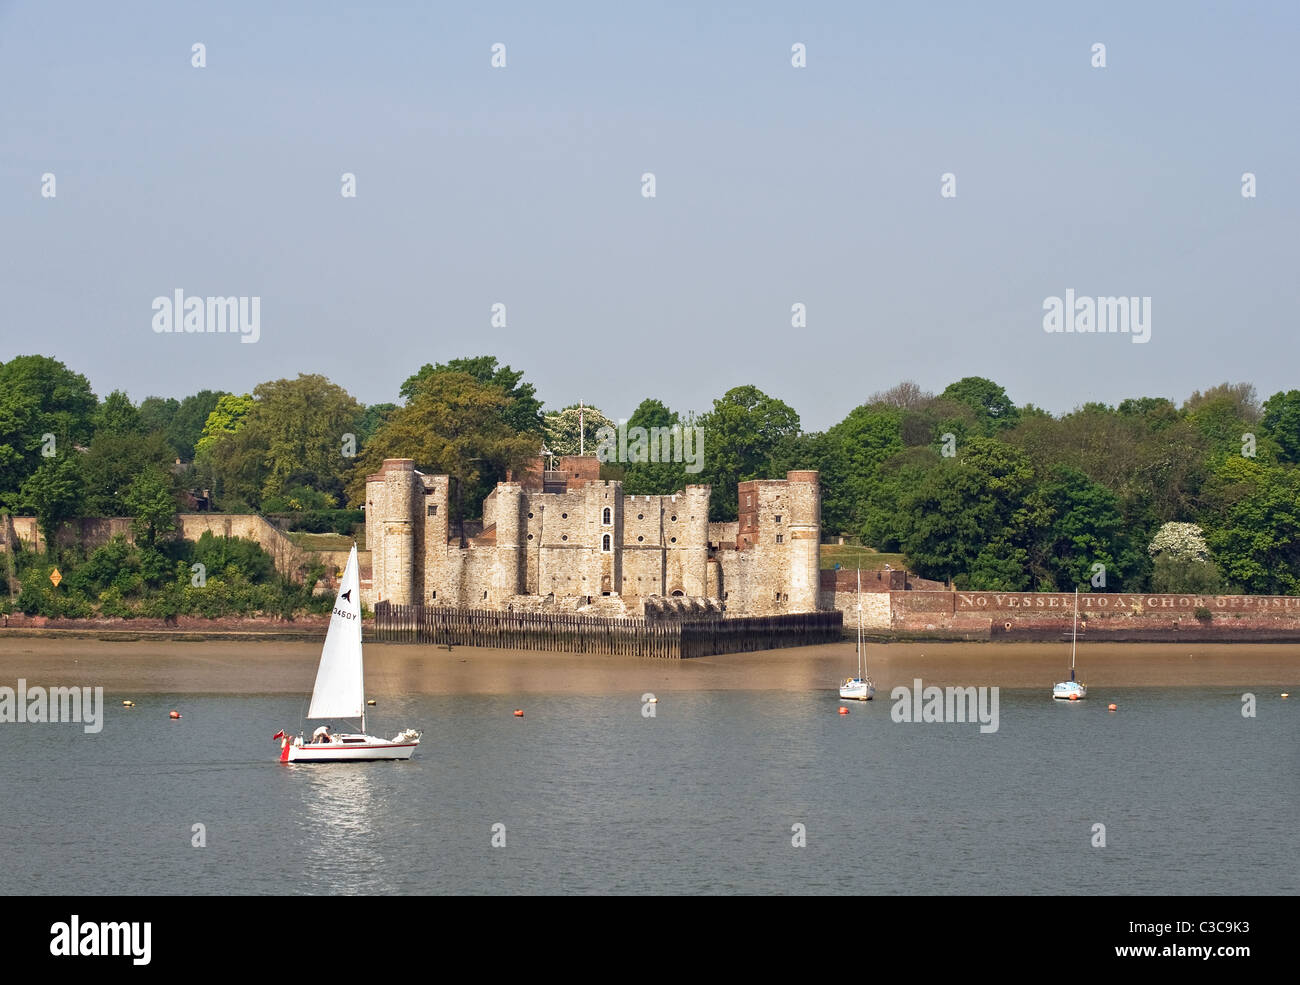 A sailboat sailing past Upnor Castle.  Photo by Gordon Scammell - Stock Image